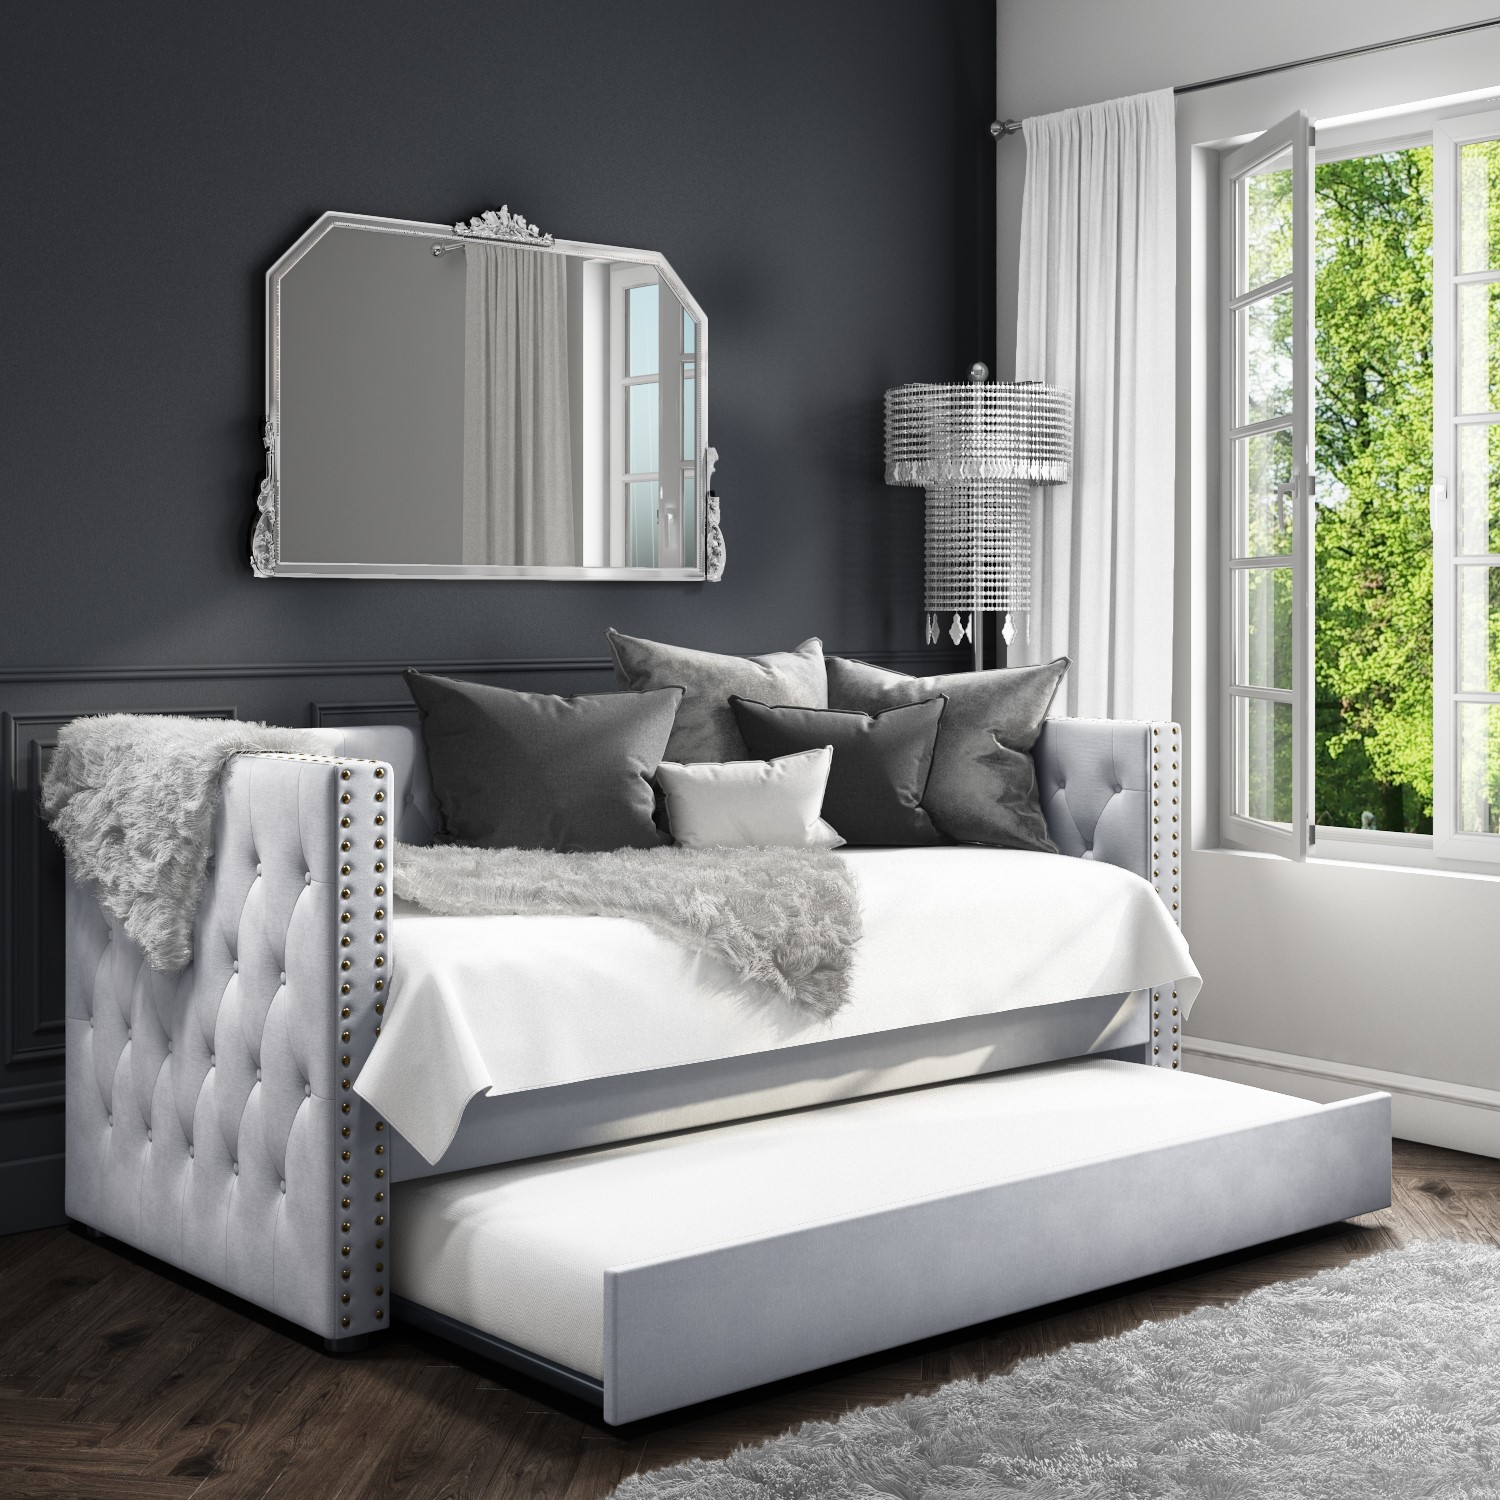 Magnificent Details About Sacha Velvet Sofa Bed In Silver Grey Trundle Bed Included Bun Sah001 76477 Machost Co Dining Chair Design Ideas Machostcouk